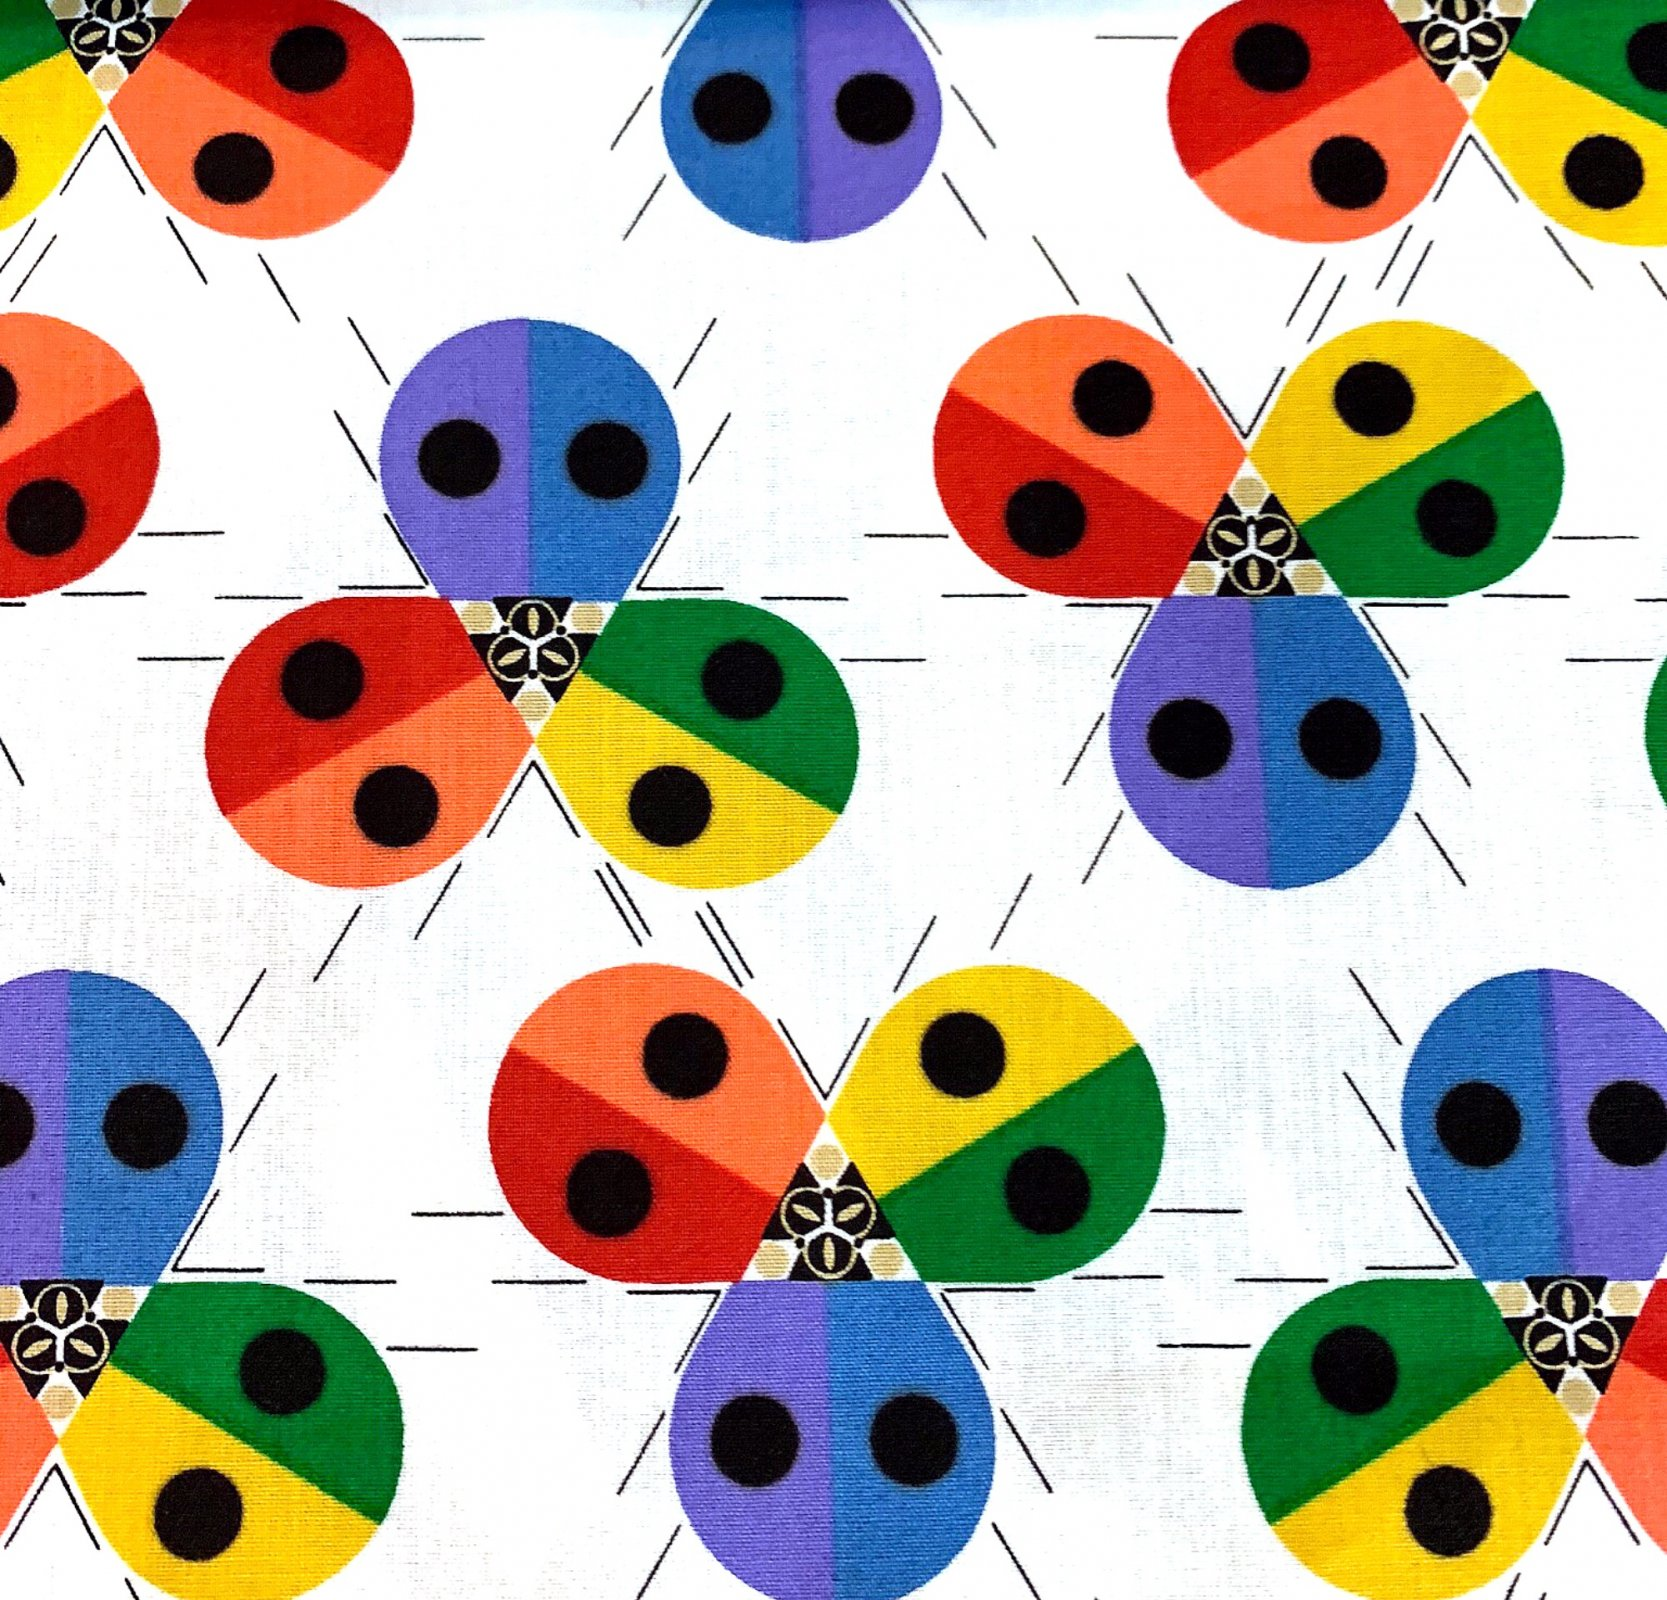 Charley Harper Ladybug Rainbow Mid Century Modern Charles Harper Certified Organic Cotton Fabric Quilt Fabric CHB87